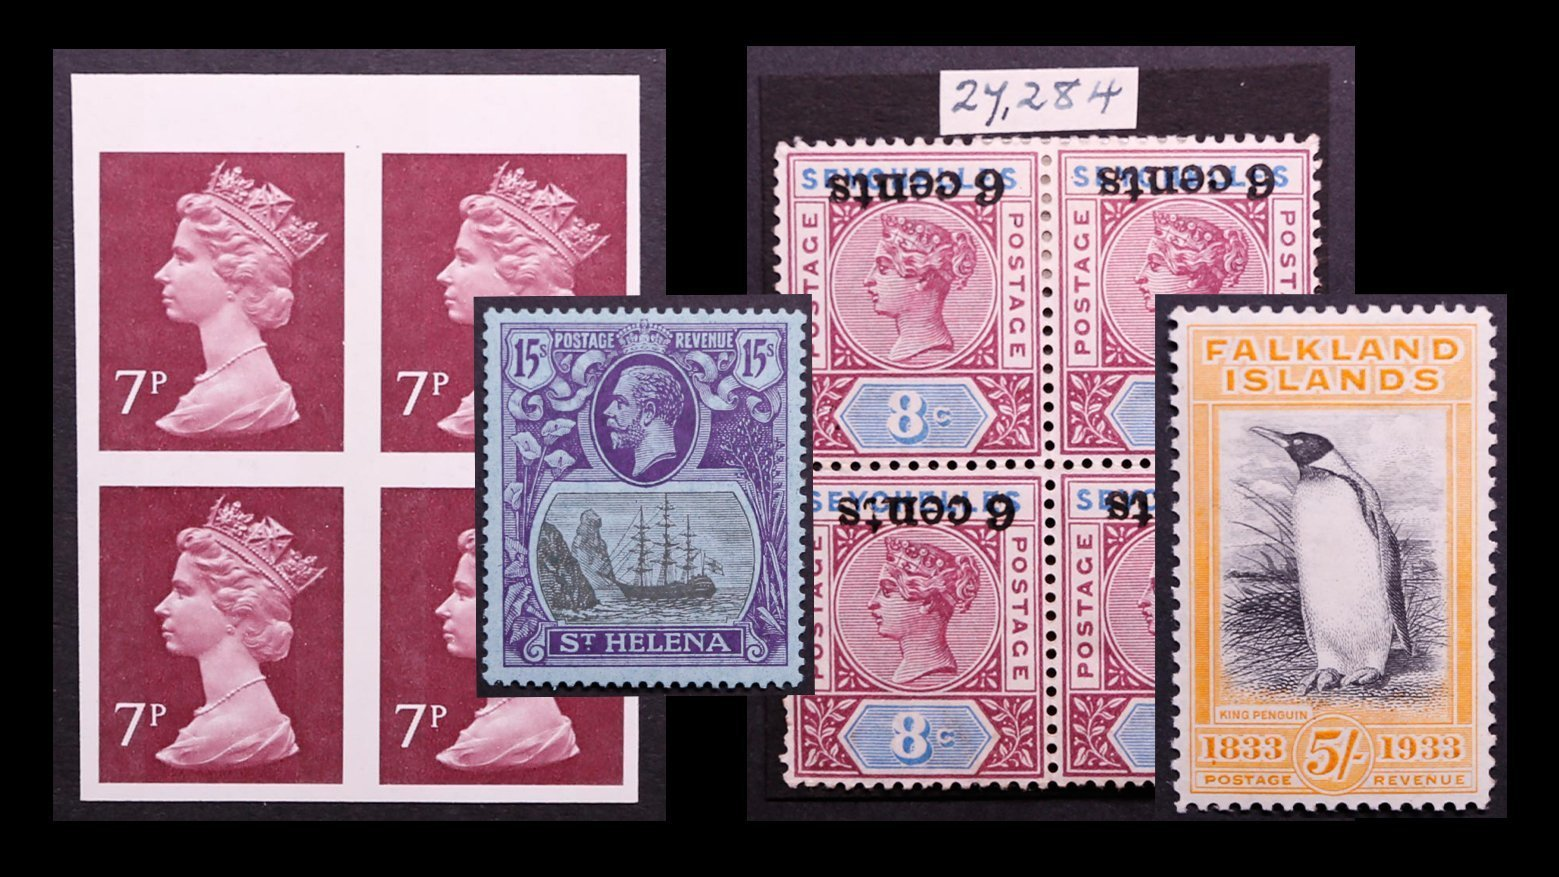 Featured stamps included in Sale No.1992